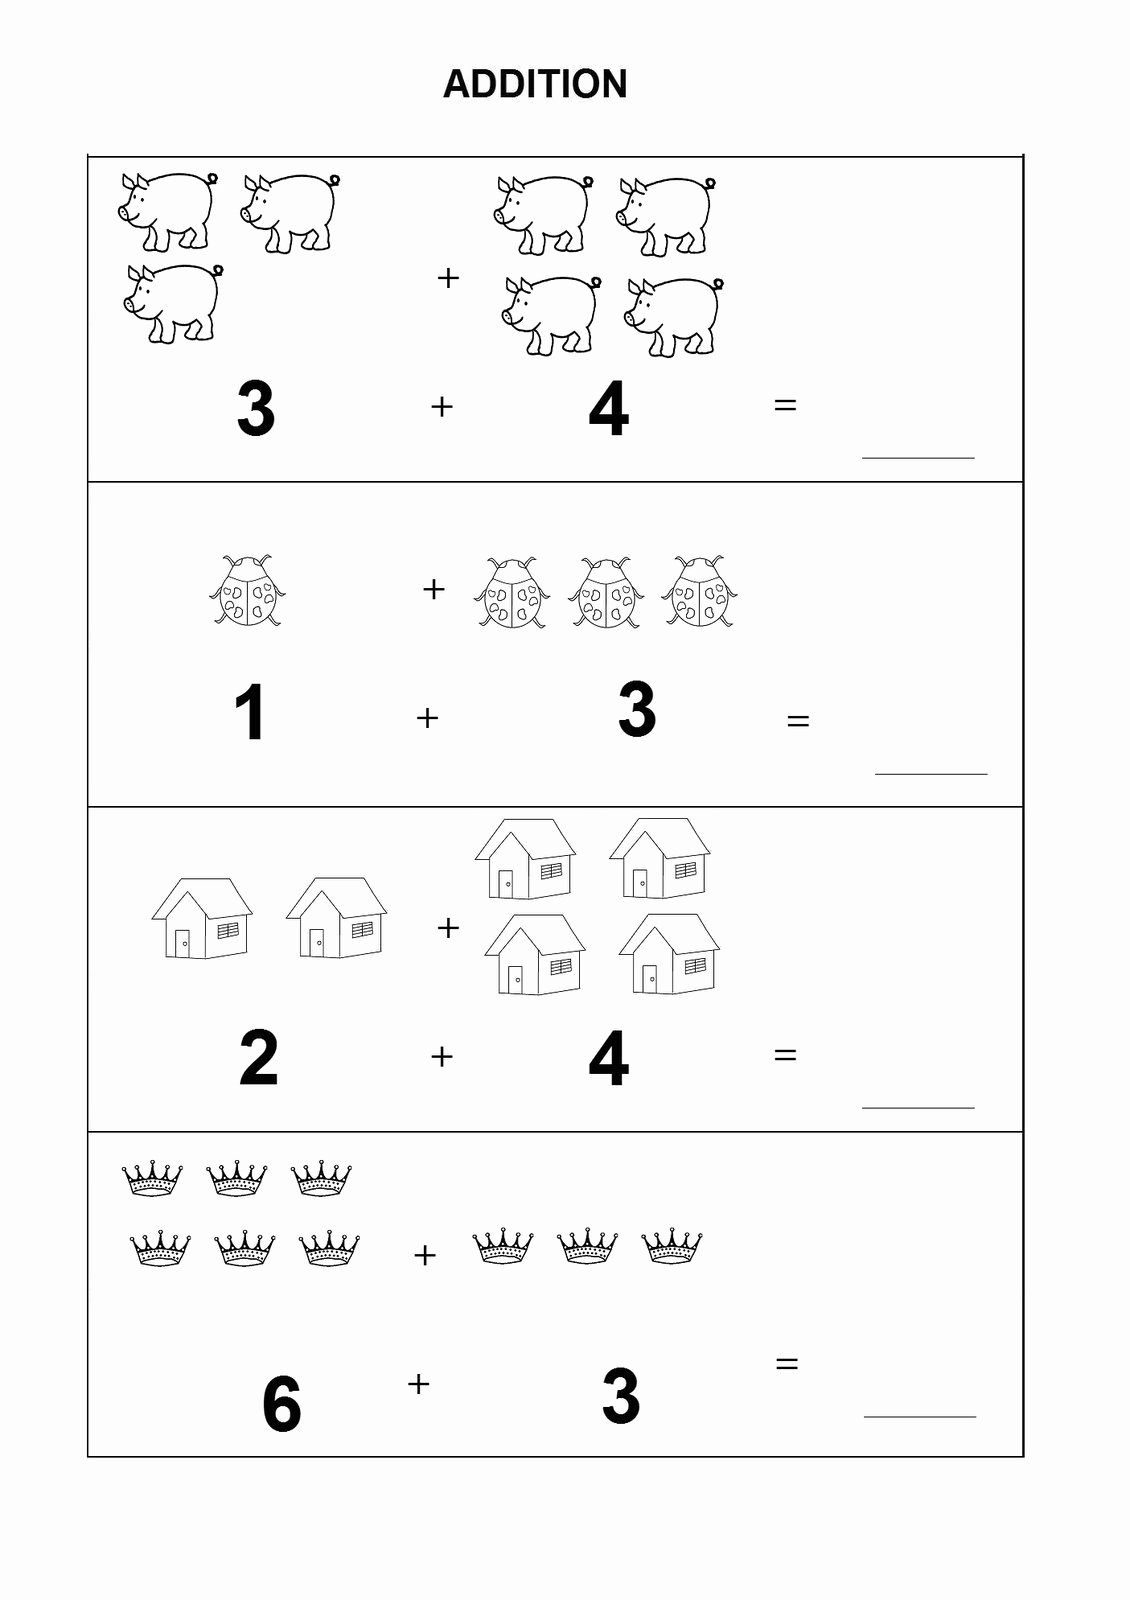 Kindergarten Math Worksheet Pdf Awesome Kindergarten Math Worksheets Pdf Addition – Learning Printable